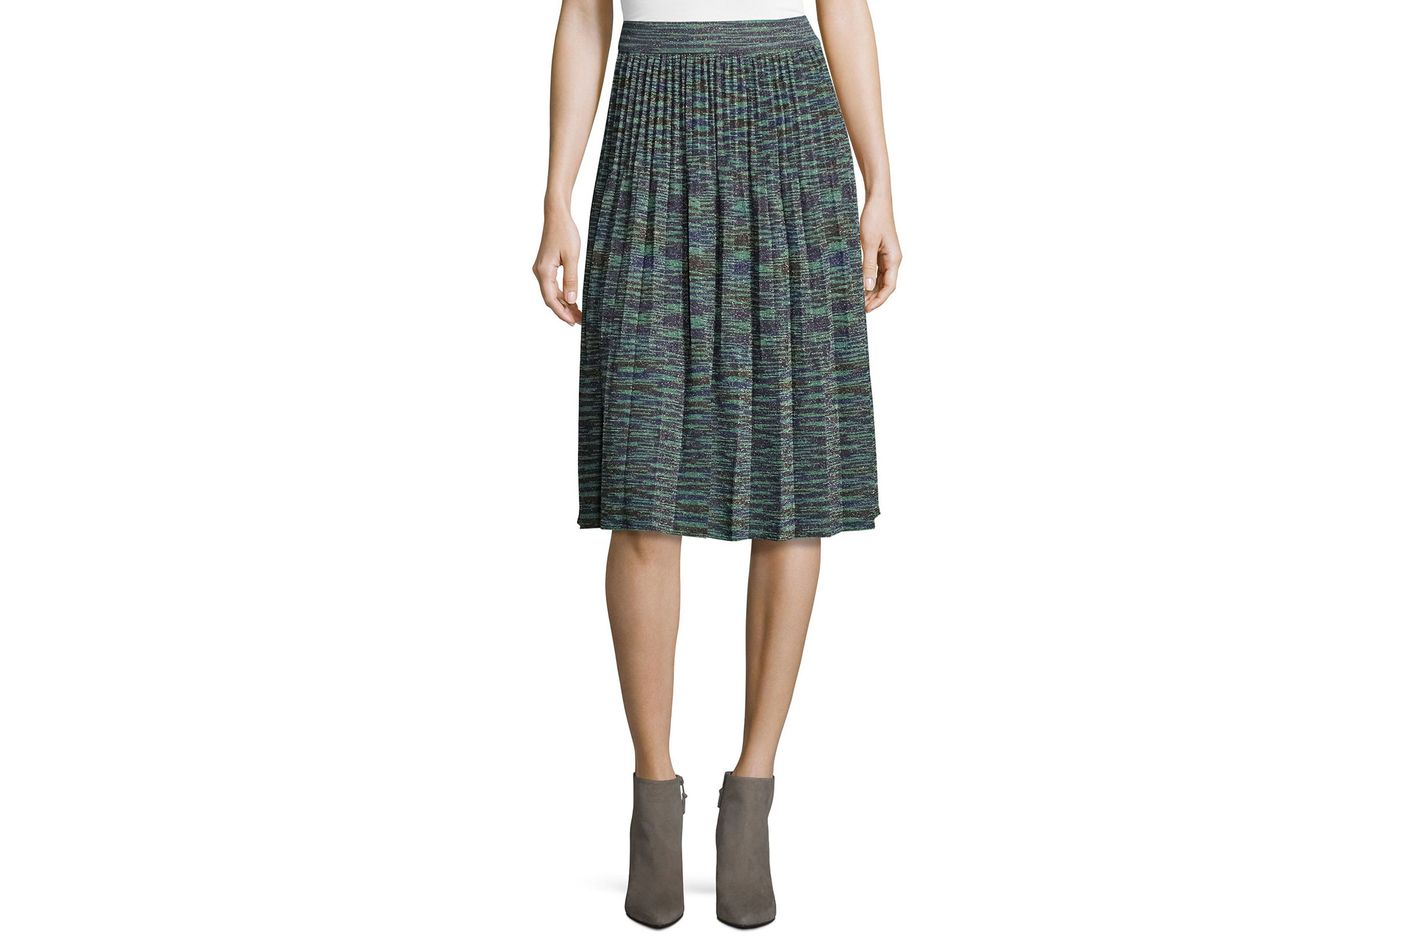 M Missoni Space-Dyed Lurex Pleated Skirt